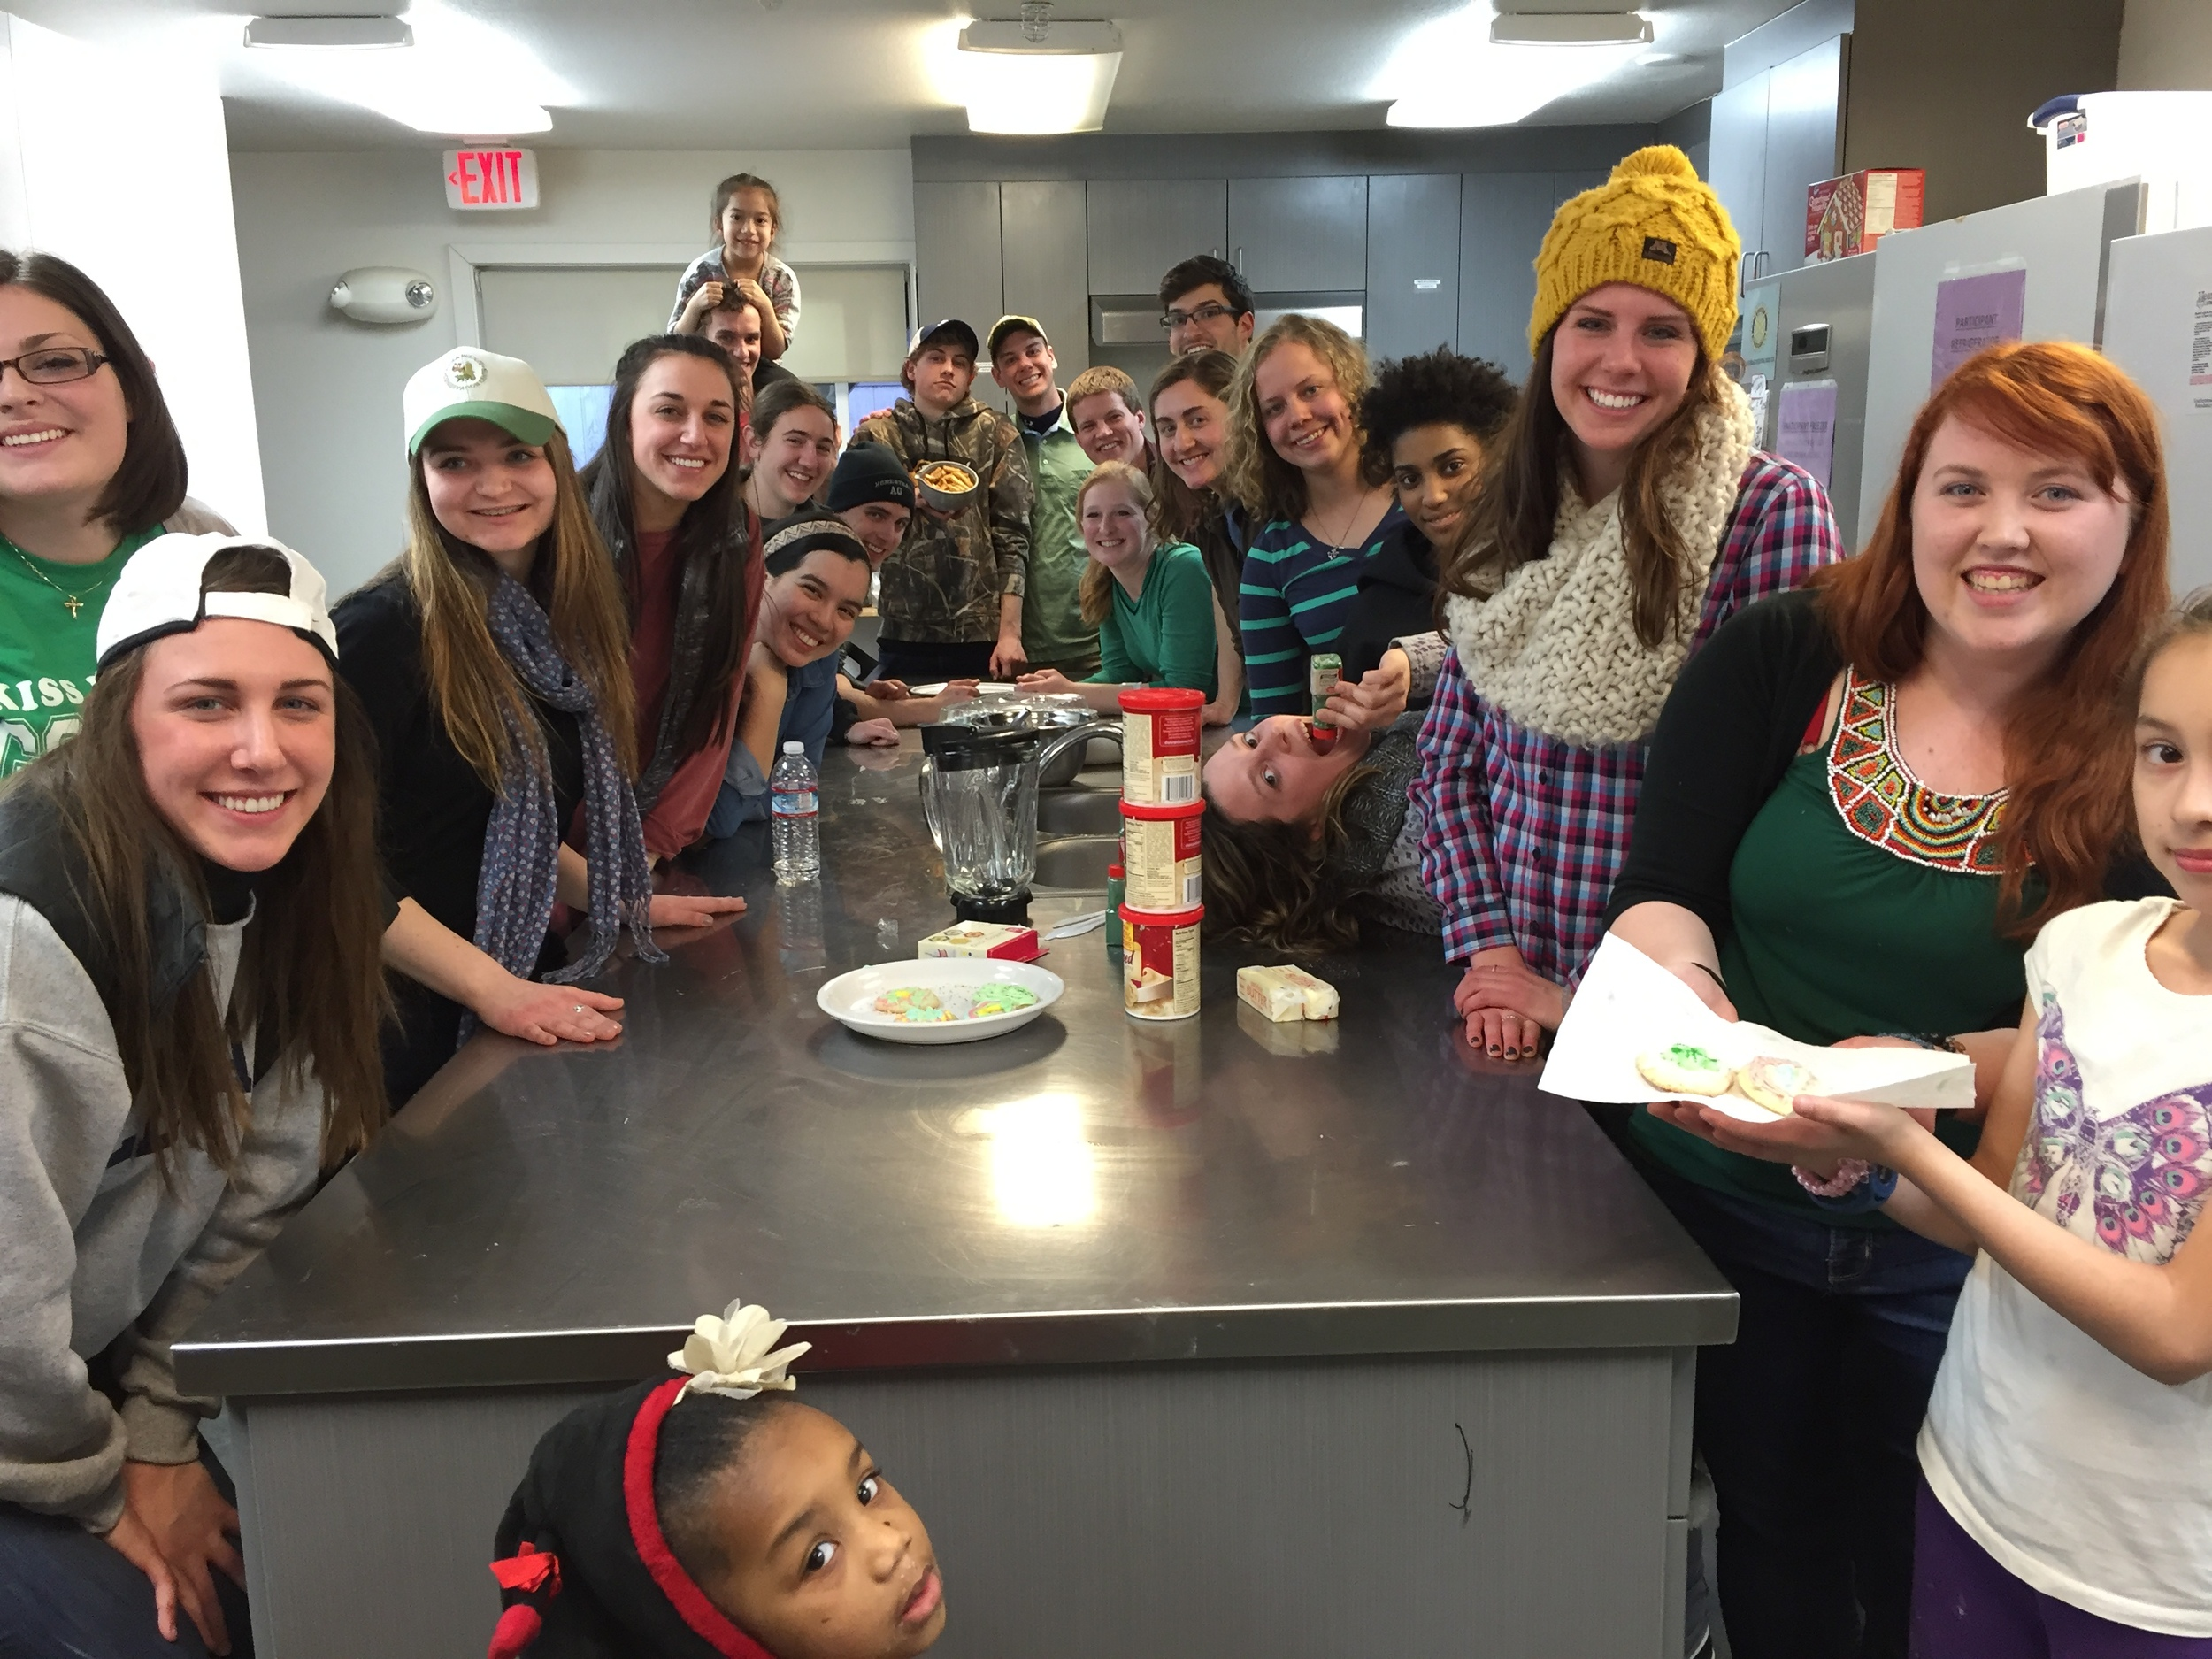 Baking cookies with the homeless children at Clare House for St. Patrick's Day